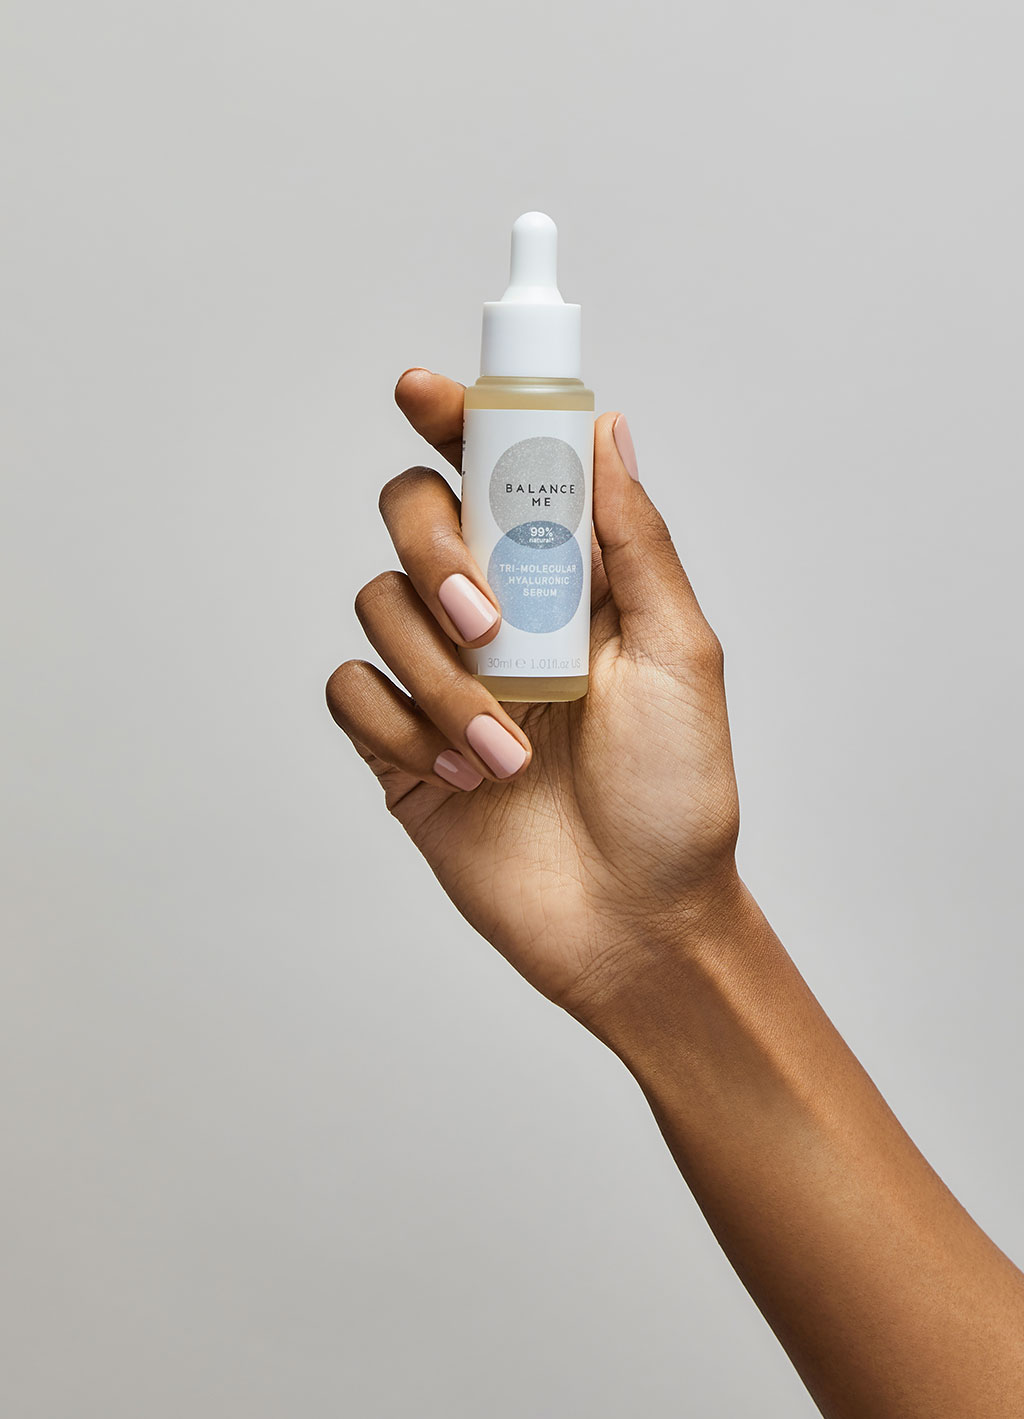 A closeup of the texture of our Balance Me Tri-Molecular Hyaluronic Serum bottle being held